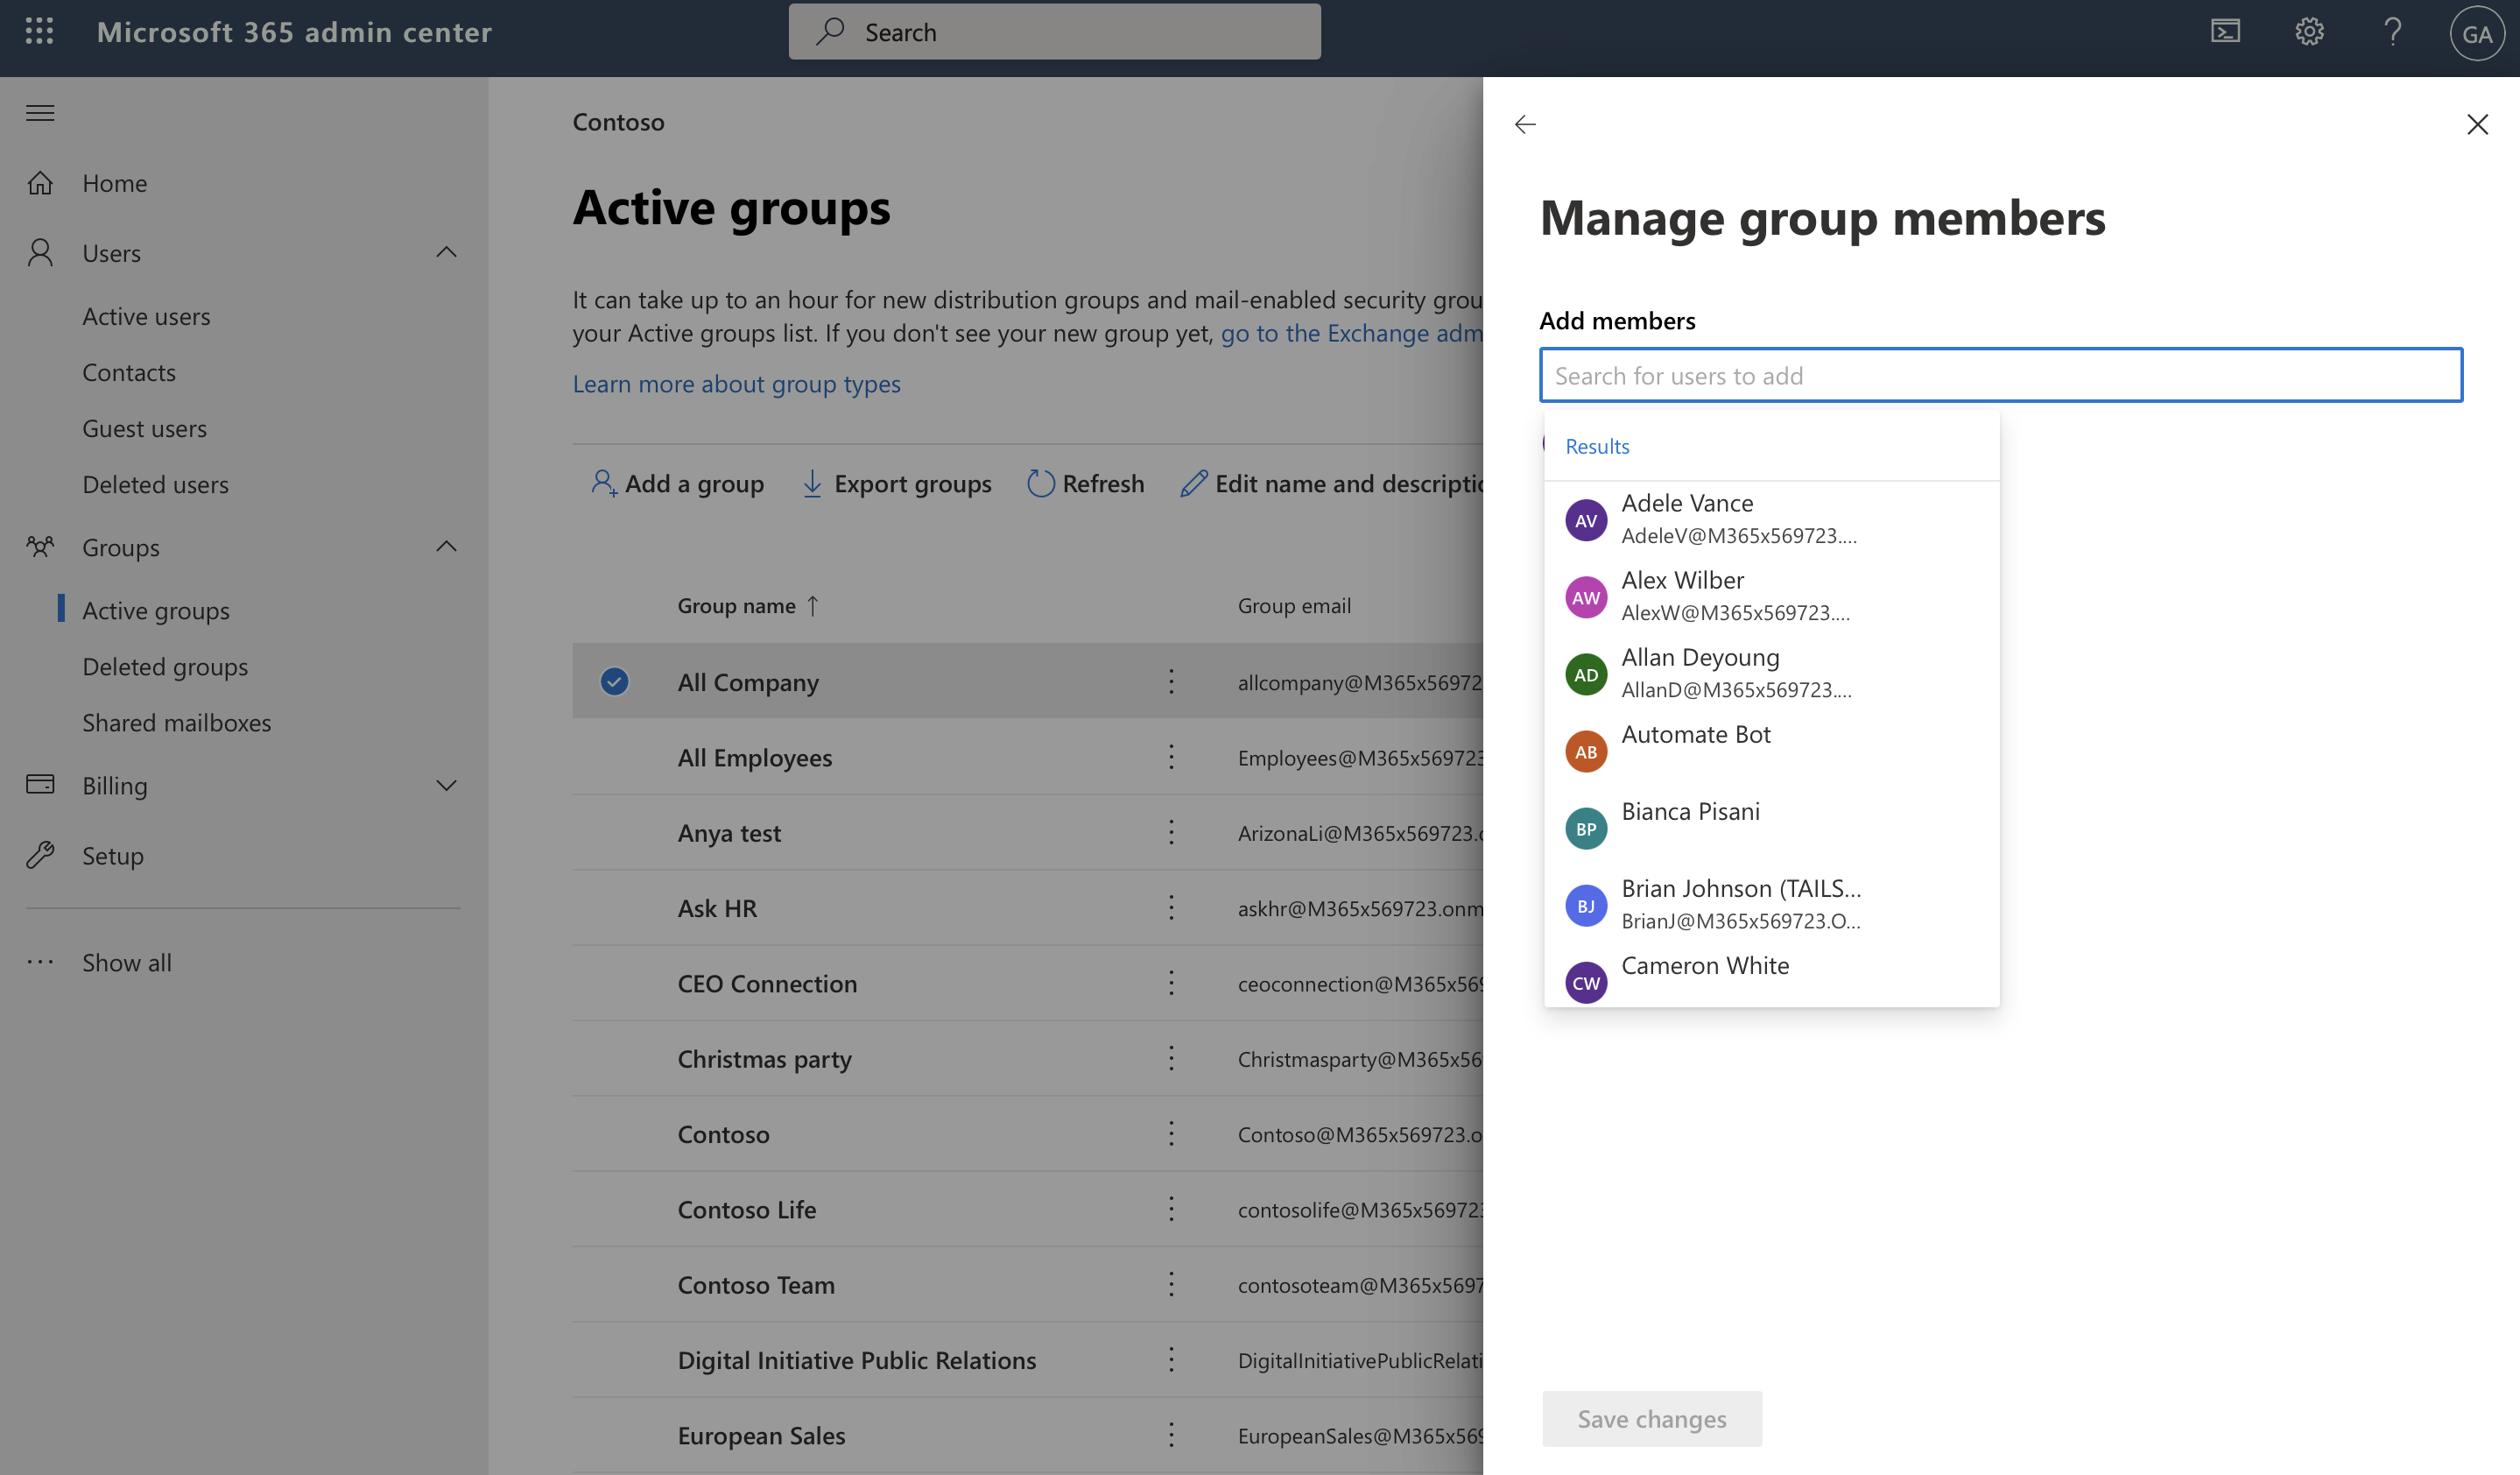 Screenshot of user adding members to a group in Microsoft 365 admin center